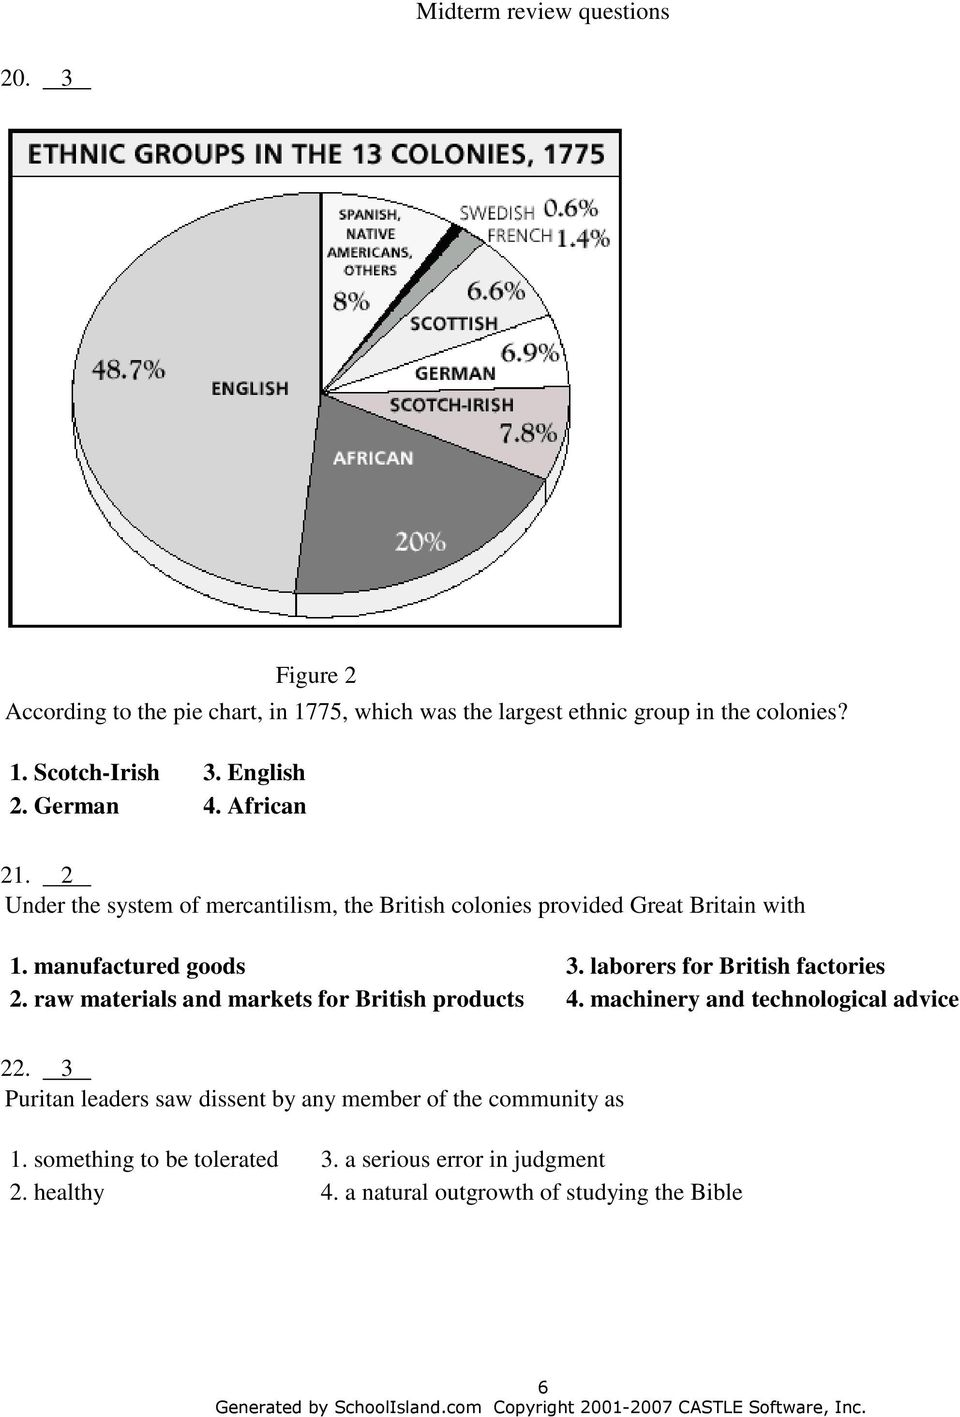 laborers for British factories 2. raw materials and markets for British products 4. machinery and technological advice 22.